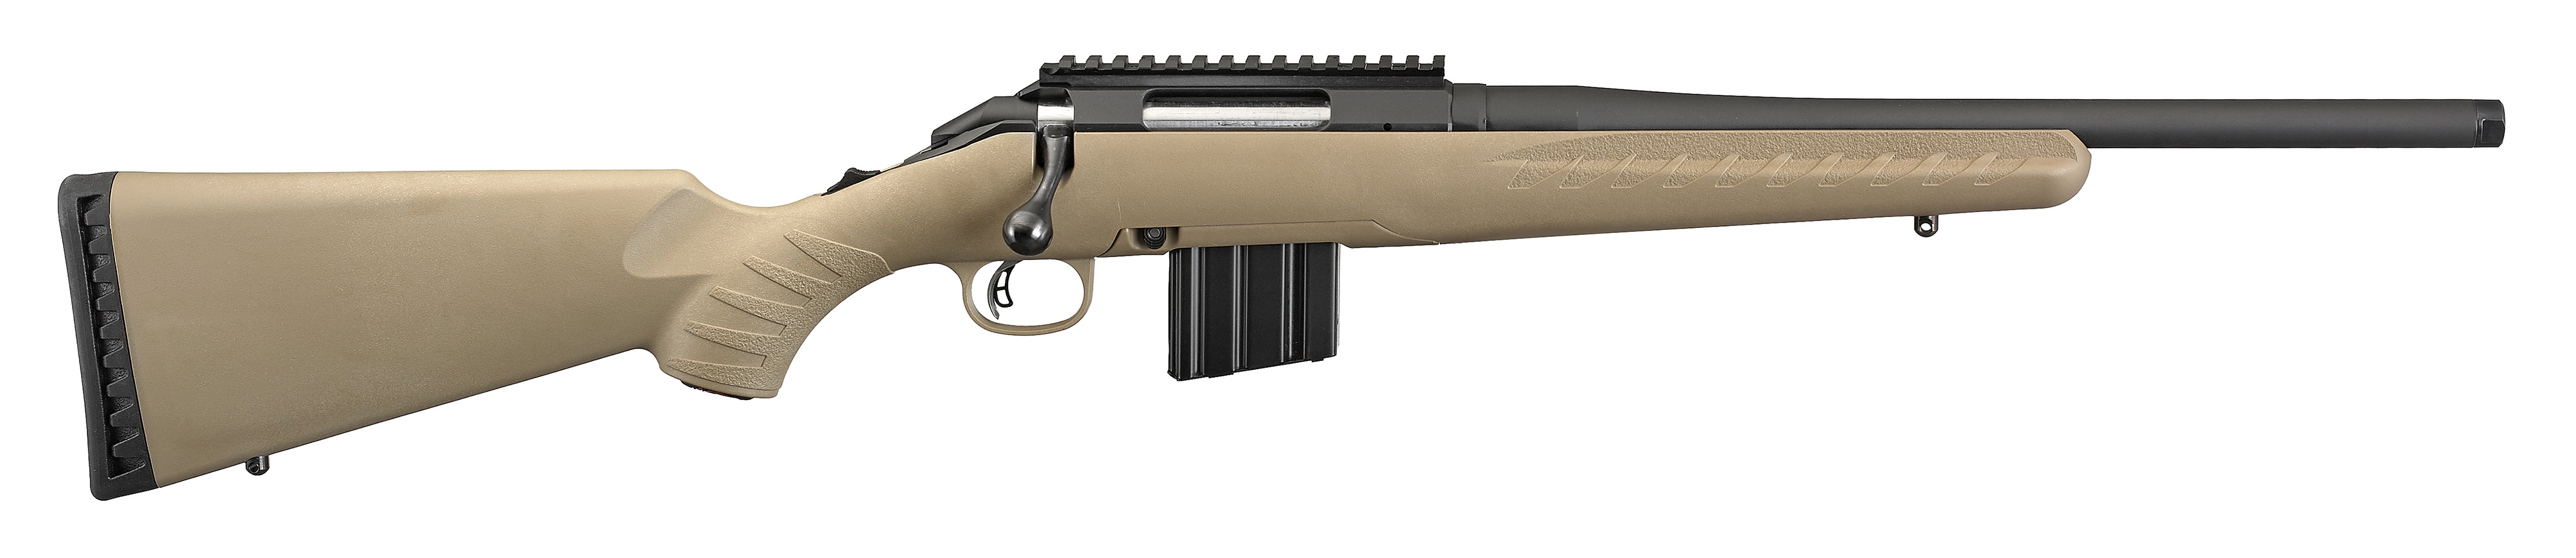 Ruger AMERICAN RANCH RIFLE 6.5 GRENDEL